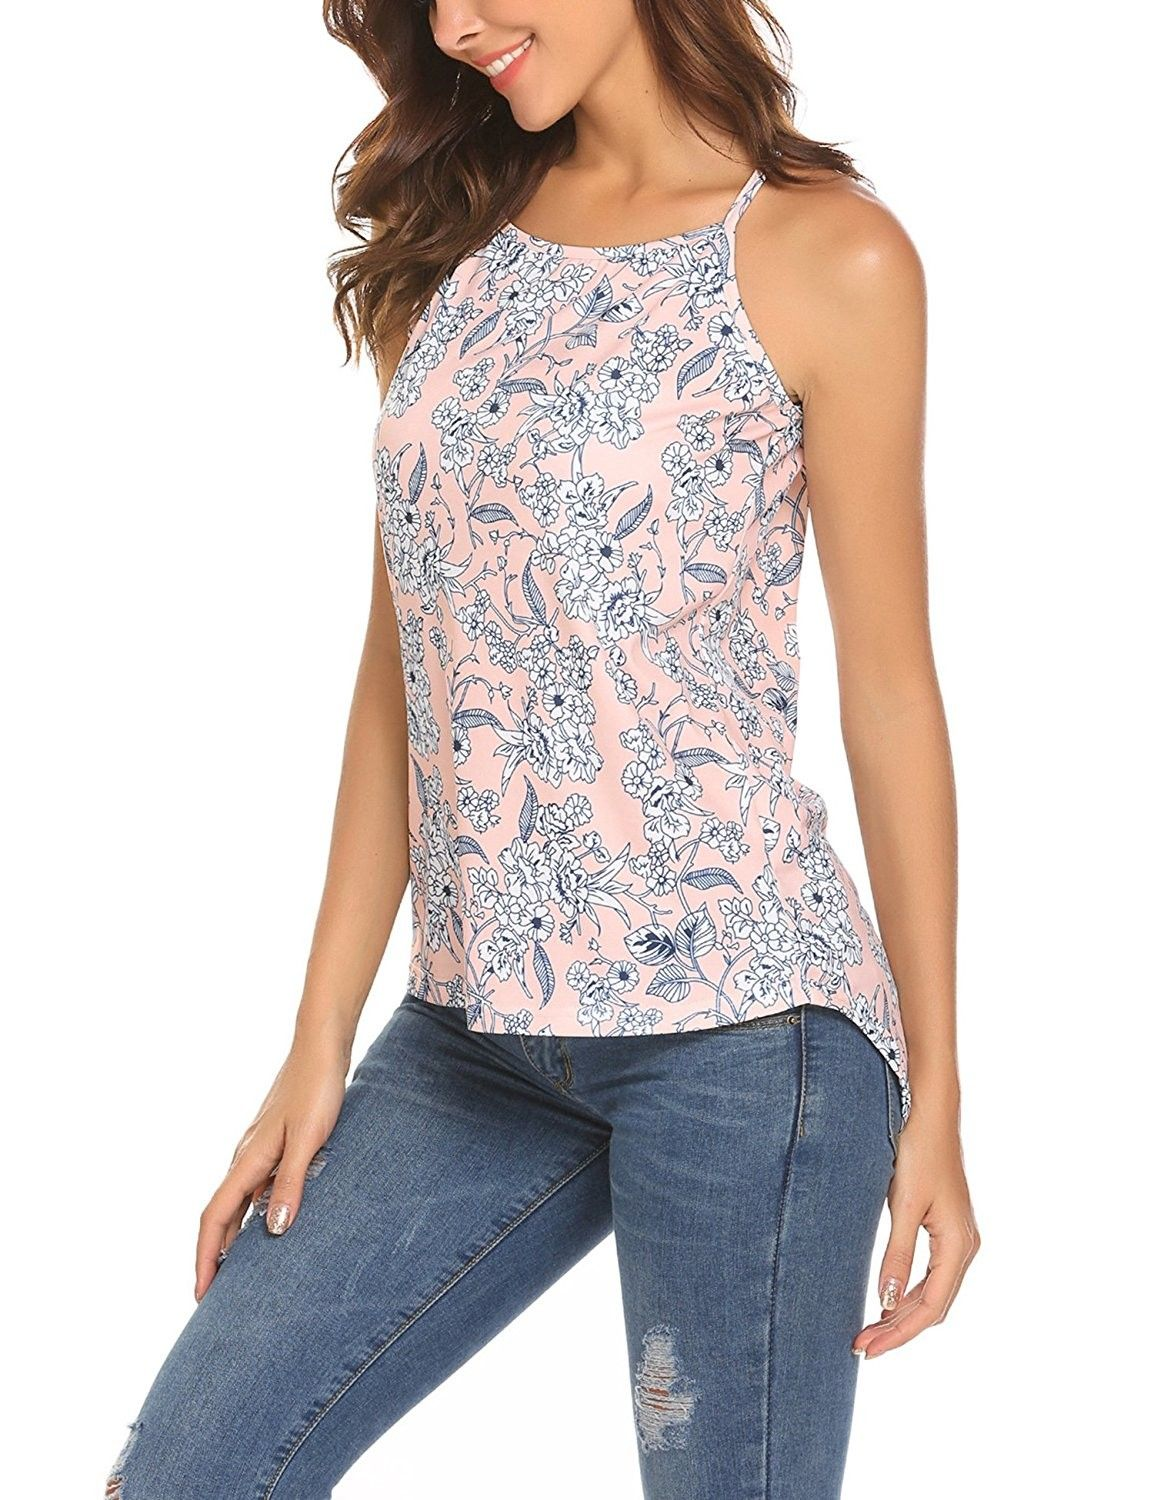 Women Boho Halter Neck Sleeveless Floral Print Shirt Tops Tee Tanks Camis -  Pink - CU189TMYKLZ   Womens clothing tops, Clothes for women, Tank top  fashion